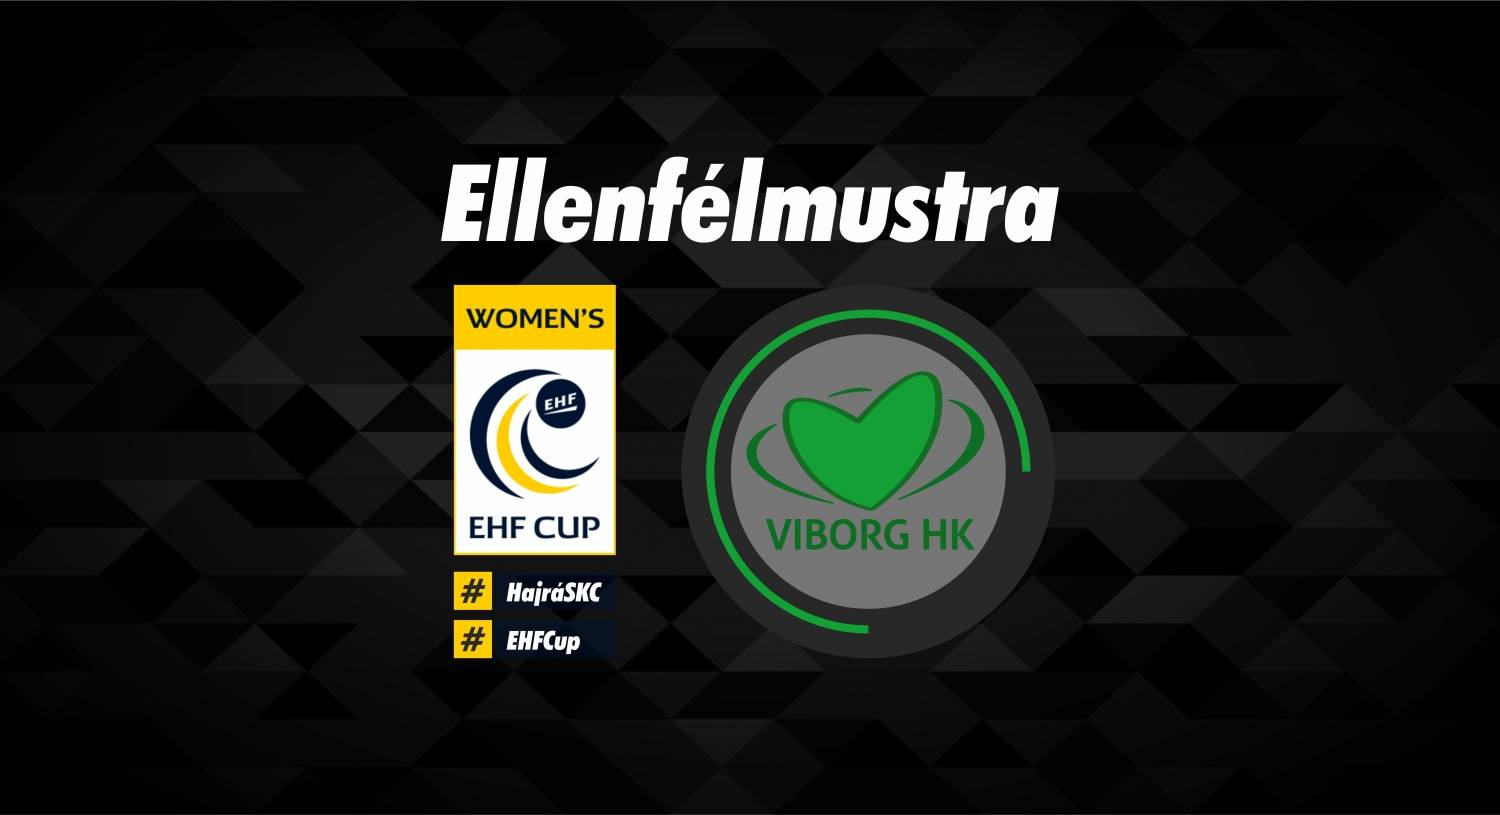 Match dates against Viborg have been finalised